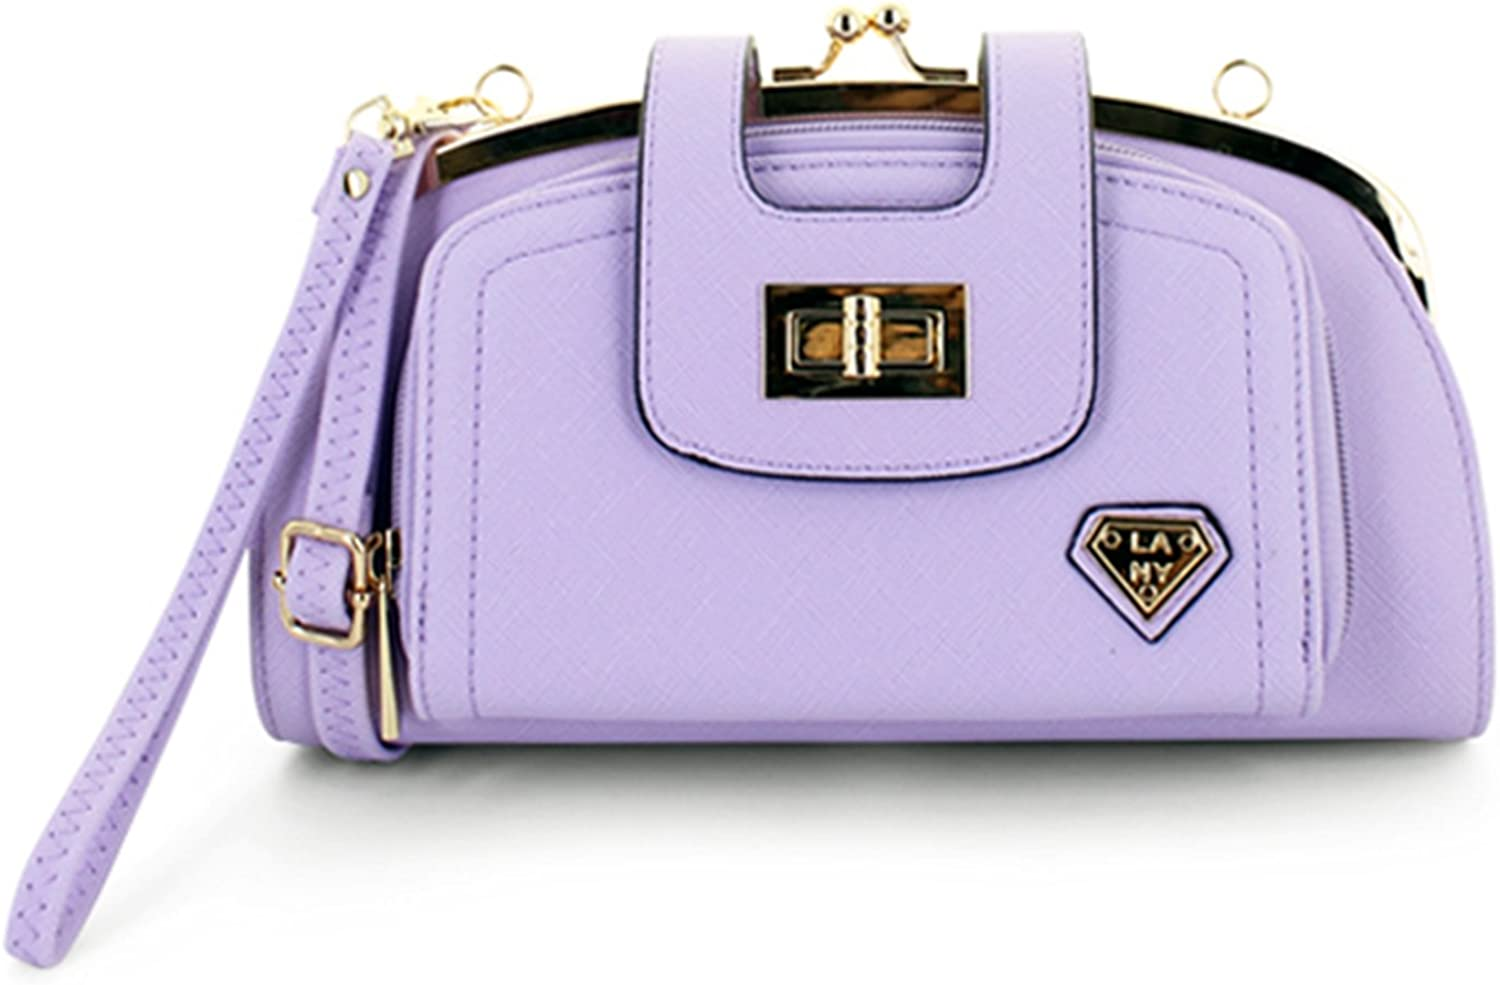 LANY Adele  Half Moon FrontTwist & Kiss Lock Clutch Crossbody Handbag